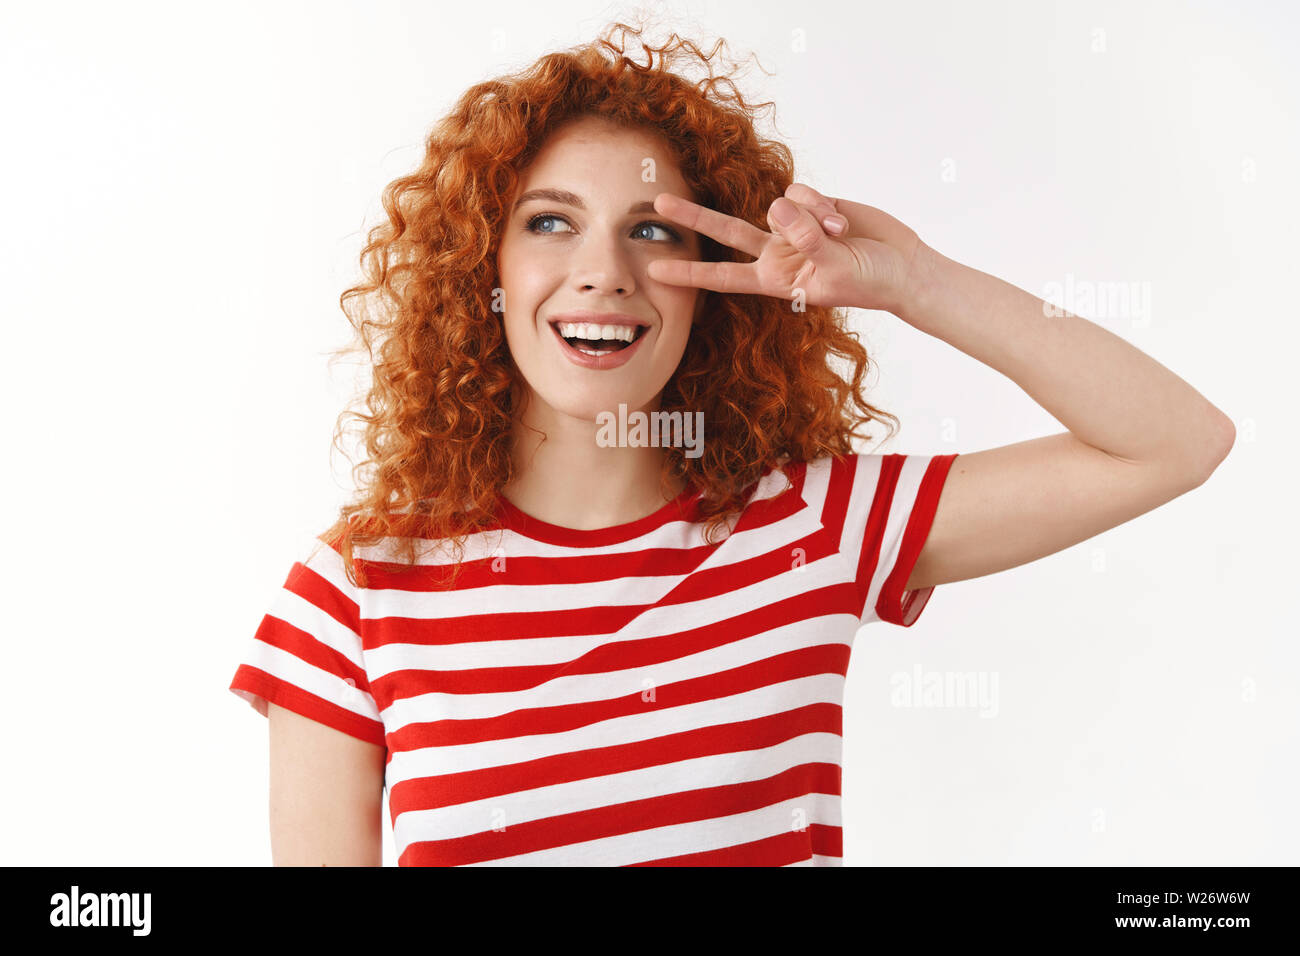 Close-up carefree joyful redhead curly woman blue eyes having fun enjoy vacation relaxing showing peace victory gesture lucky win summer travel journe - Stock Image